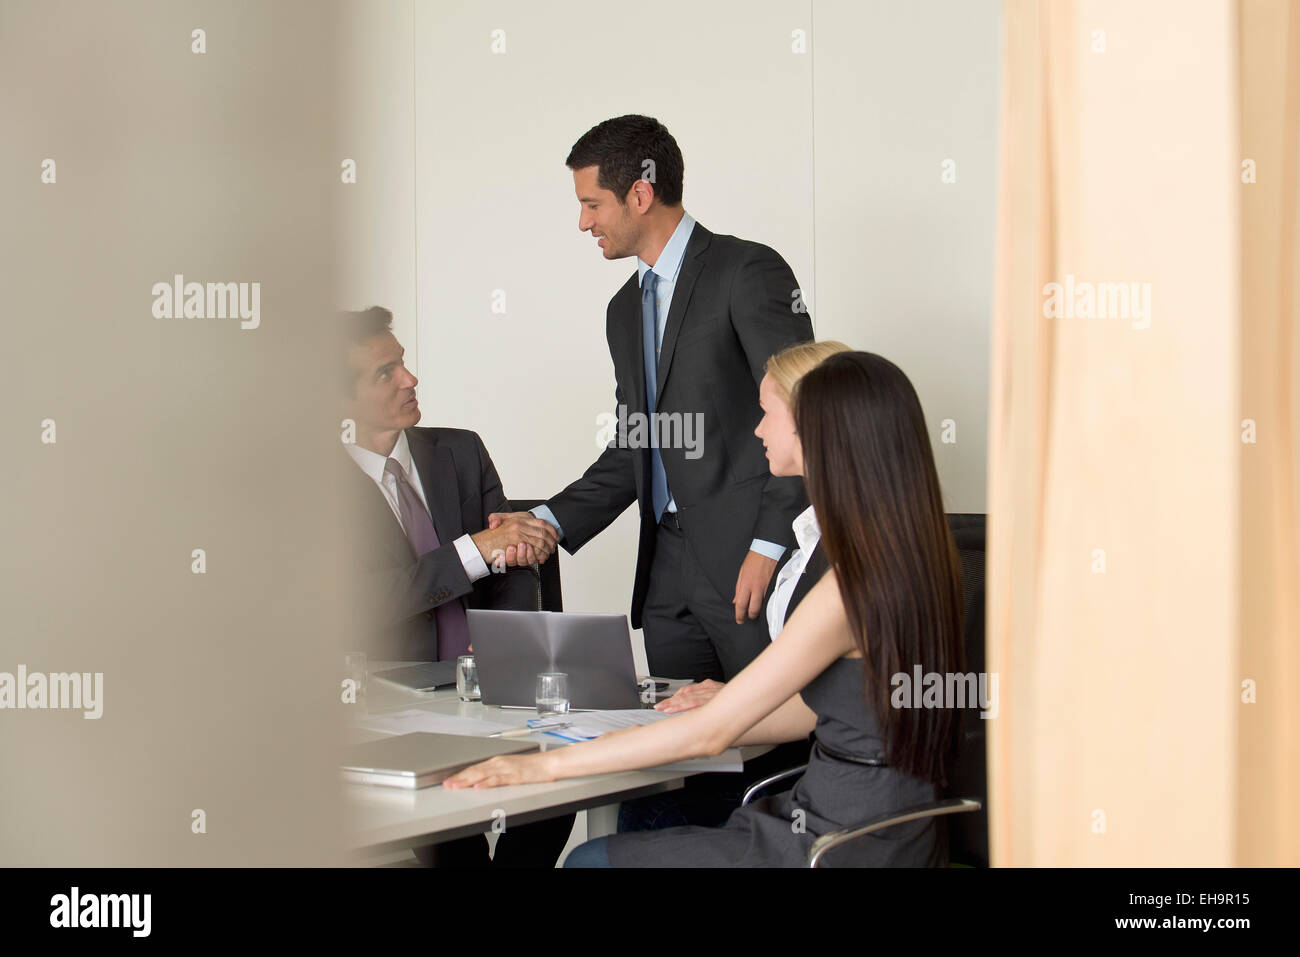 Executives meeting in conference room, viewed through doorway - Stock Image